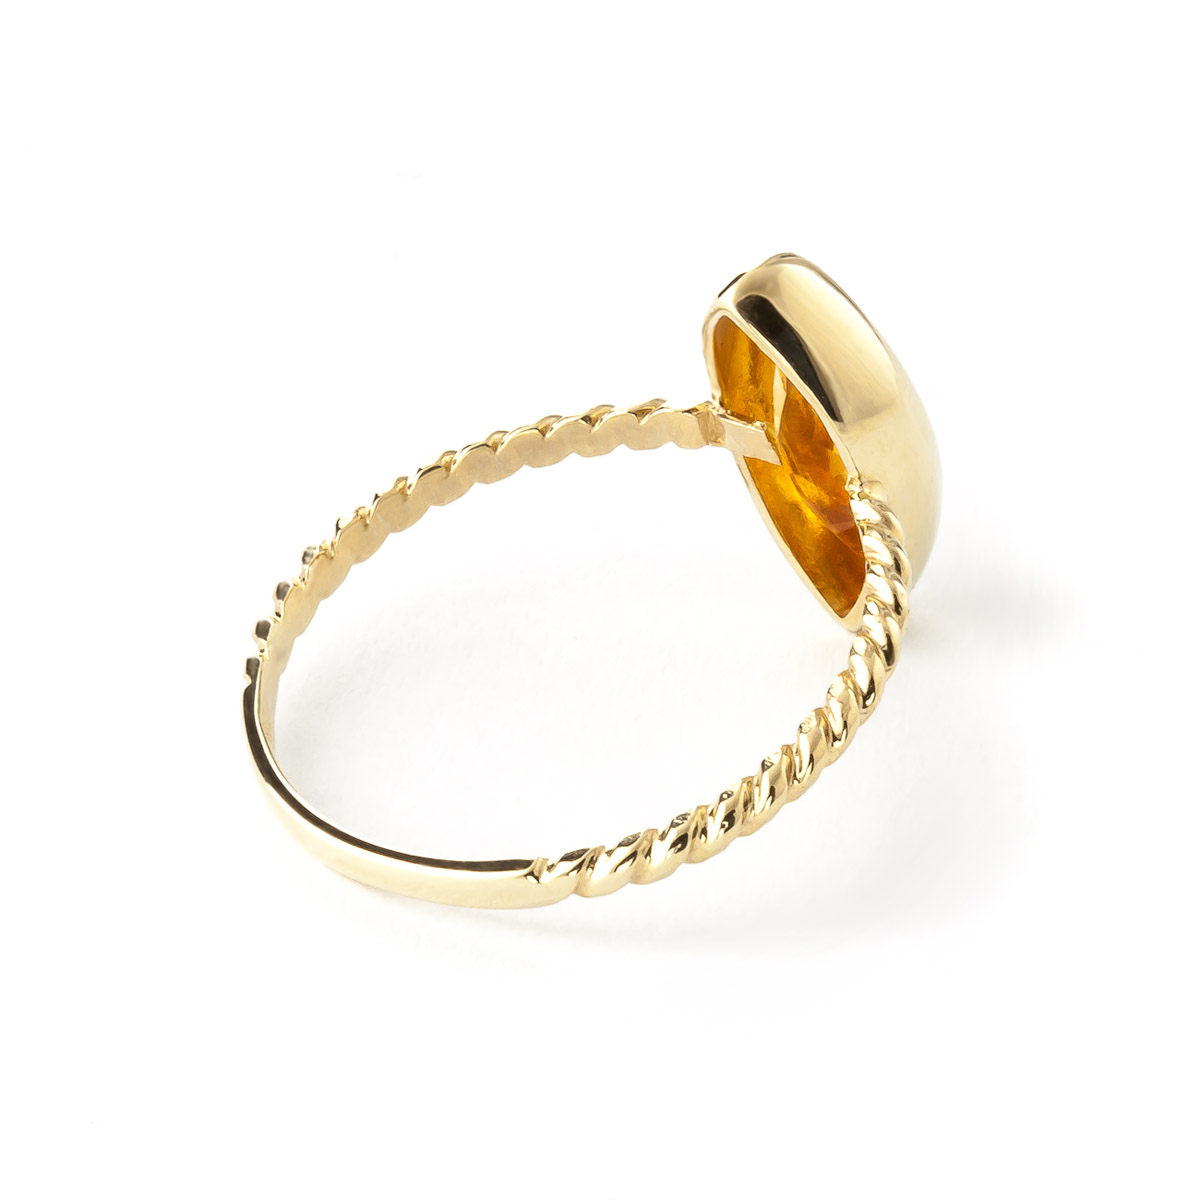 Marquise Cut Citrine Ring 1.7 ct in 9ct Gold